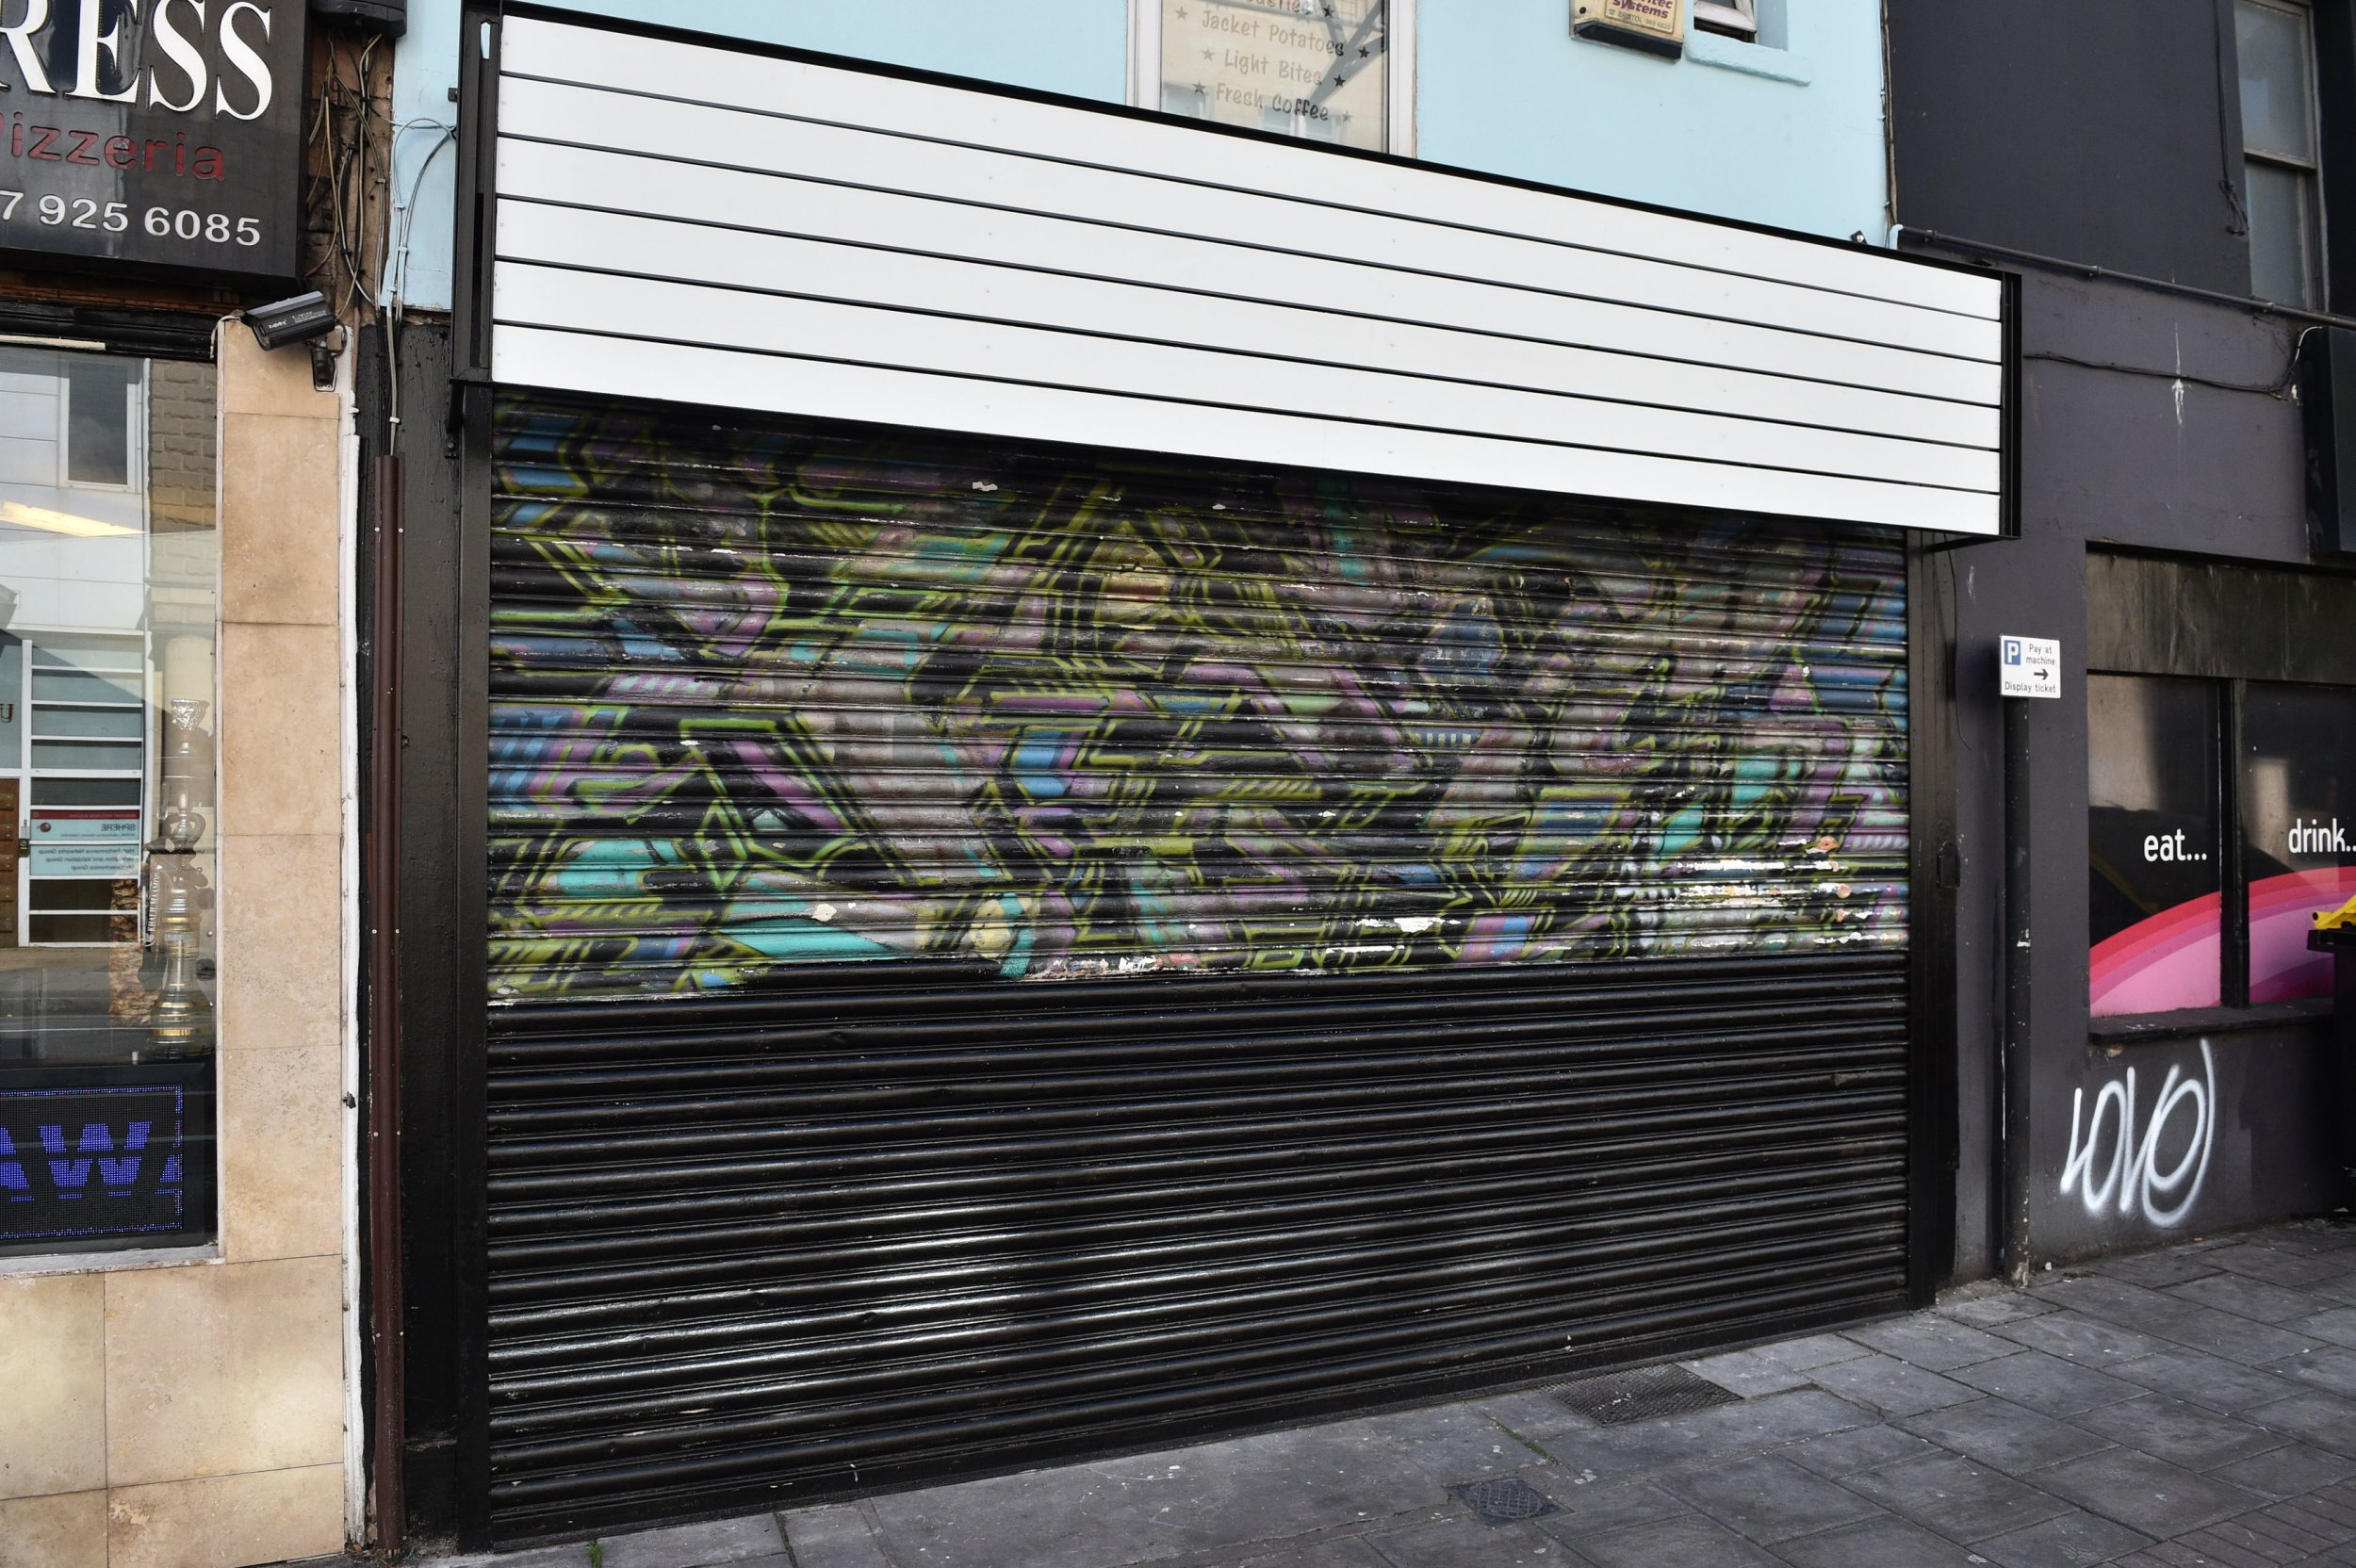 A Banksy mural on the shopfront shutters on Park Row, Bristol has been accidentally painted over in black by the new owners of the shop during renovations. PRESS ASSOCIATION Photo. Picture date: Thursday September 13, 2018. Photo credit should read: Ben Birchall/PA Wire